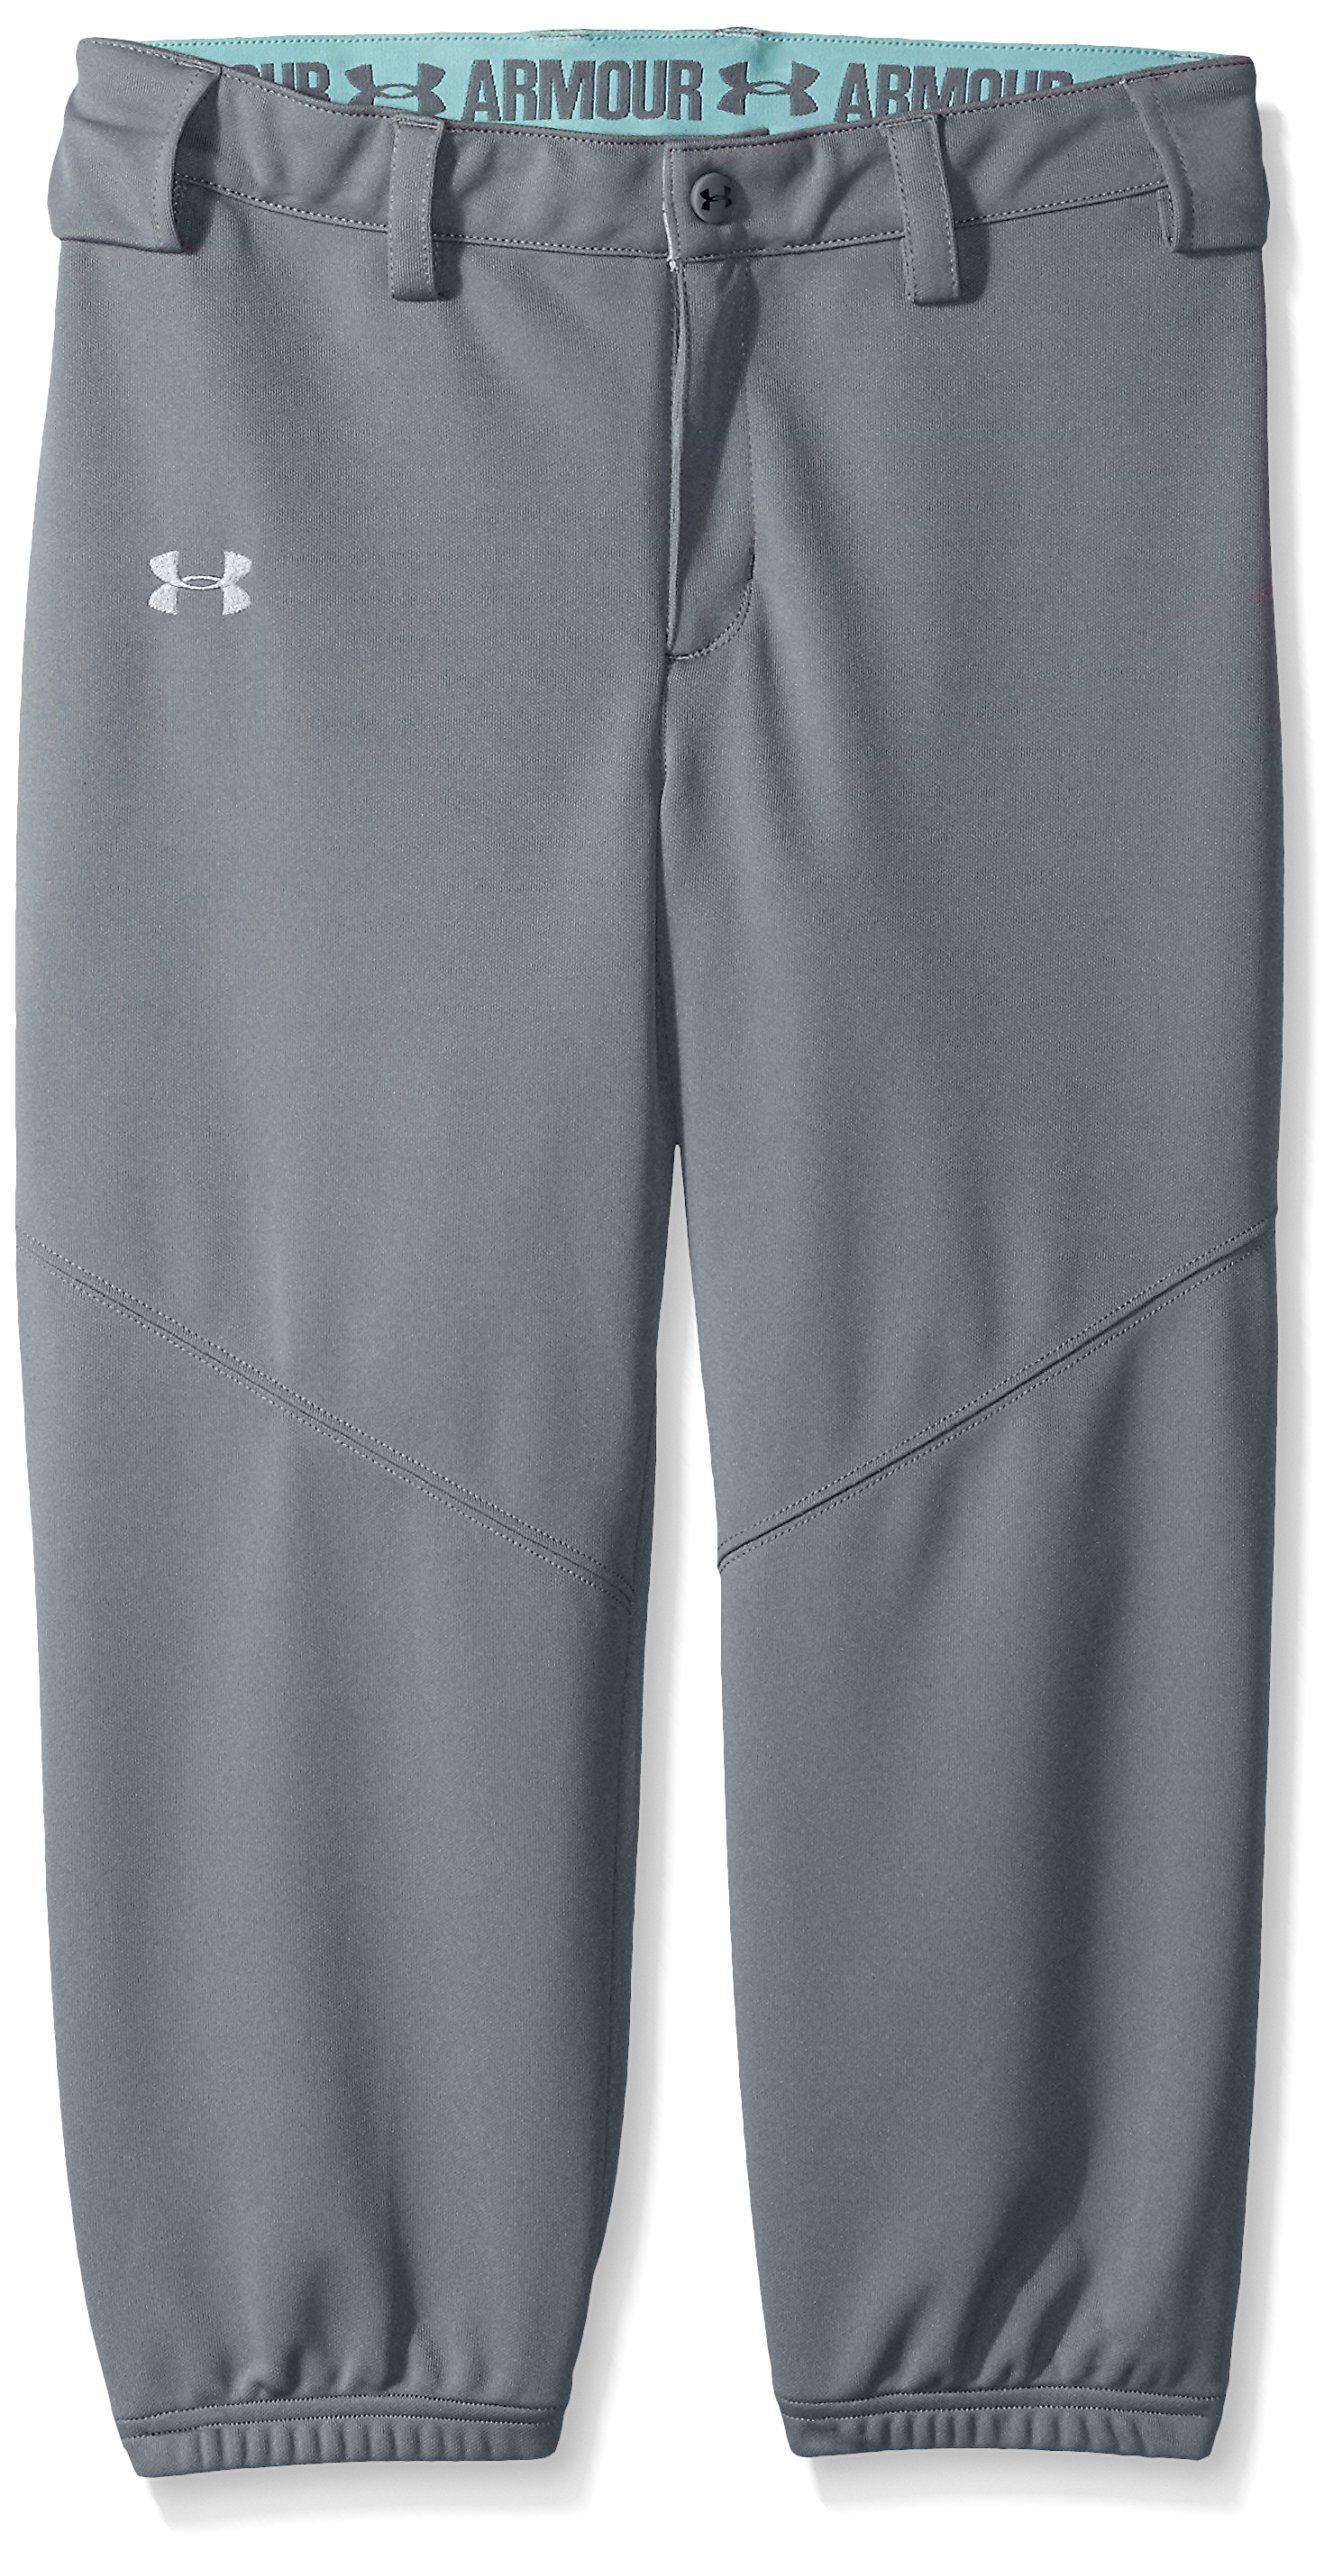 Under Armour Girls' Base Runner Softball Pants, Steel (035)/Overcast Gray, Youth Large by Under Armour (Image #1)